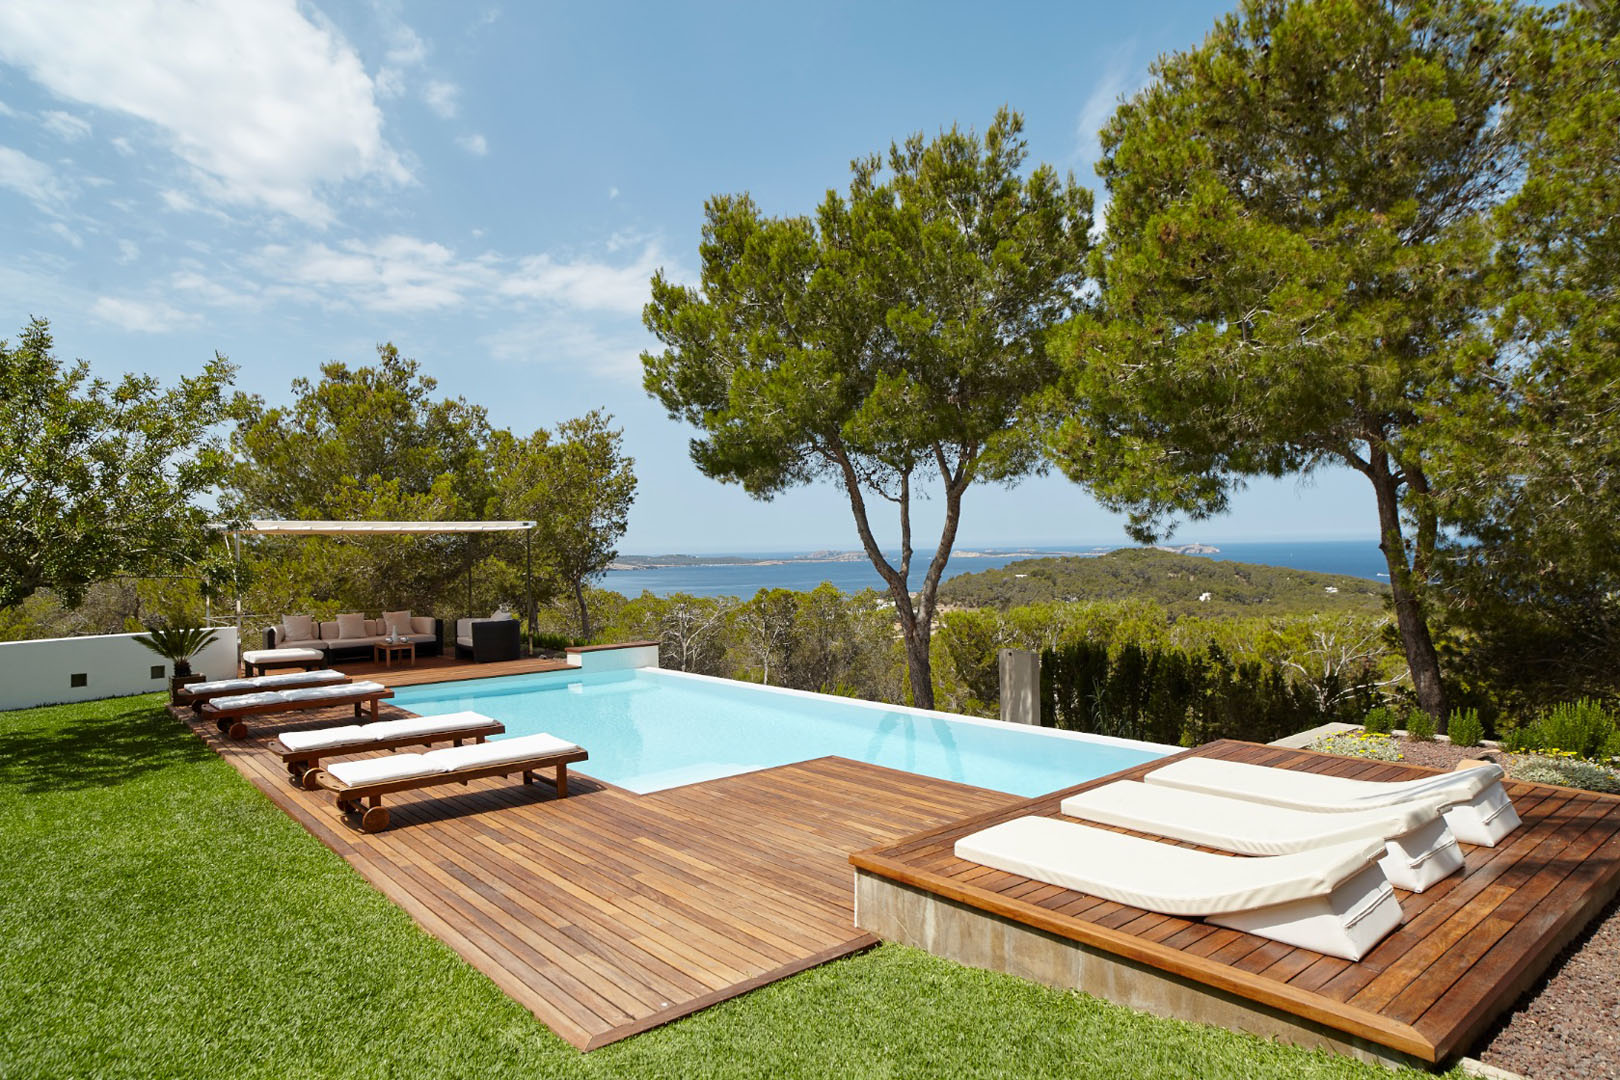 luxury villa rental, Spain, ESPIBI 2332